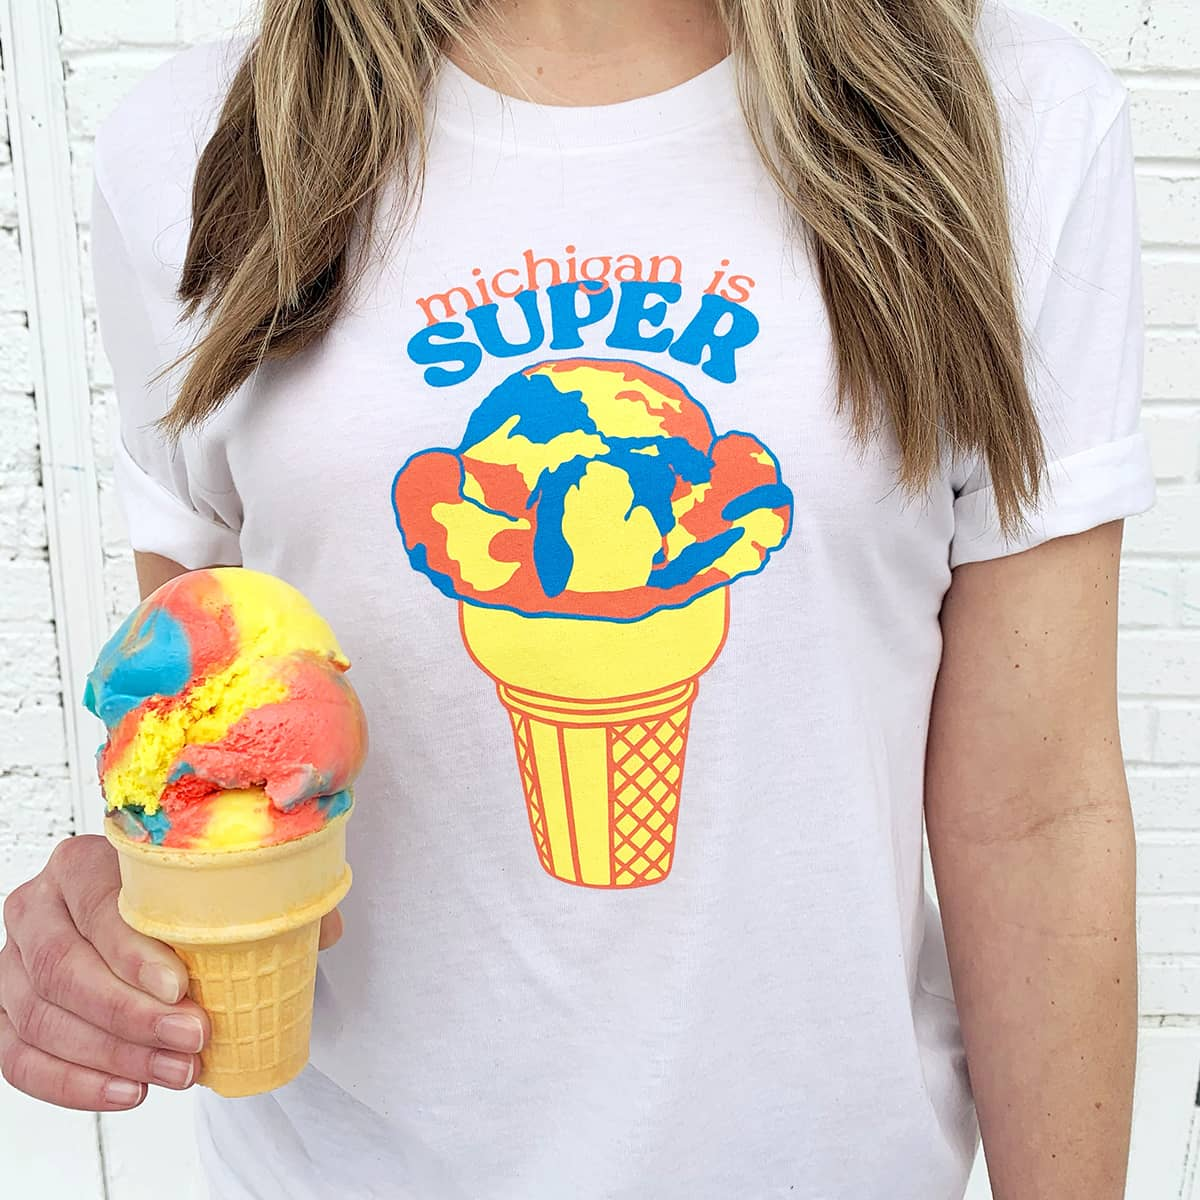 Got snacks? Your favorite Midwest treats are now on a t-shirt!